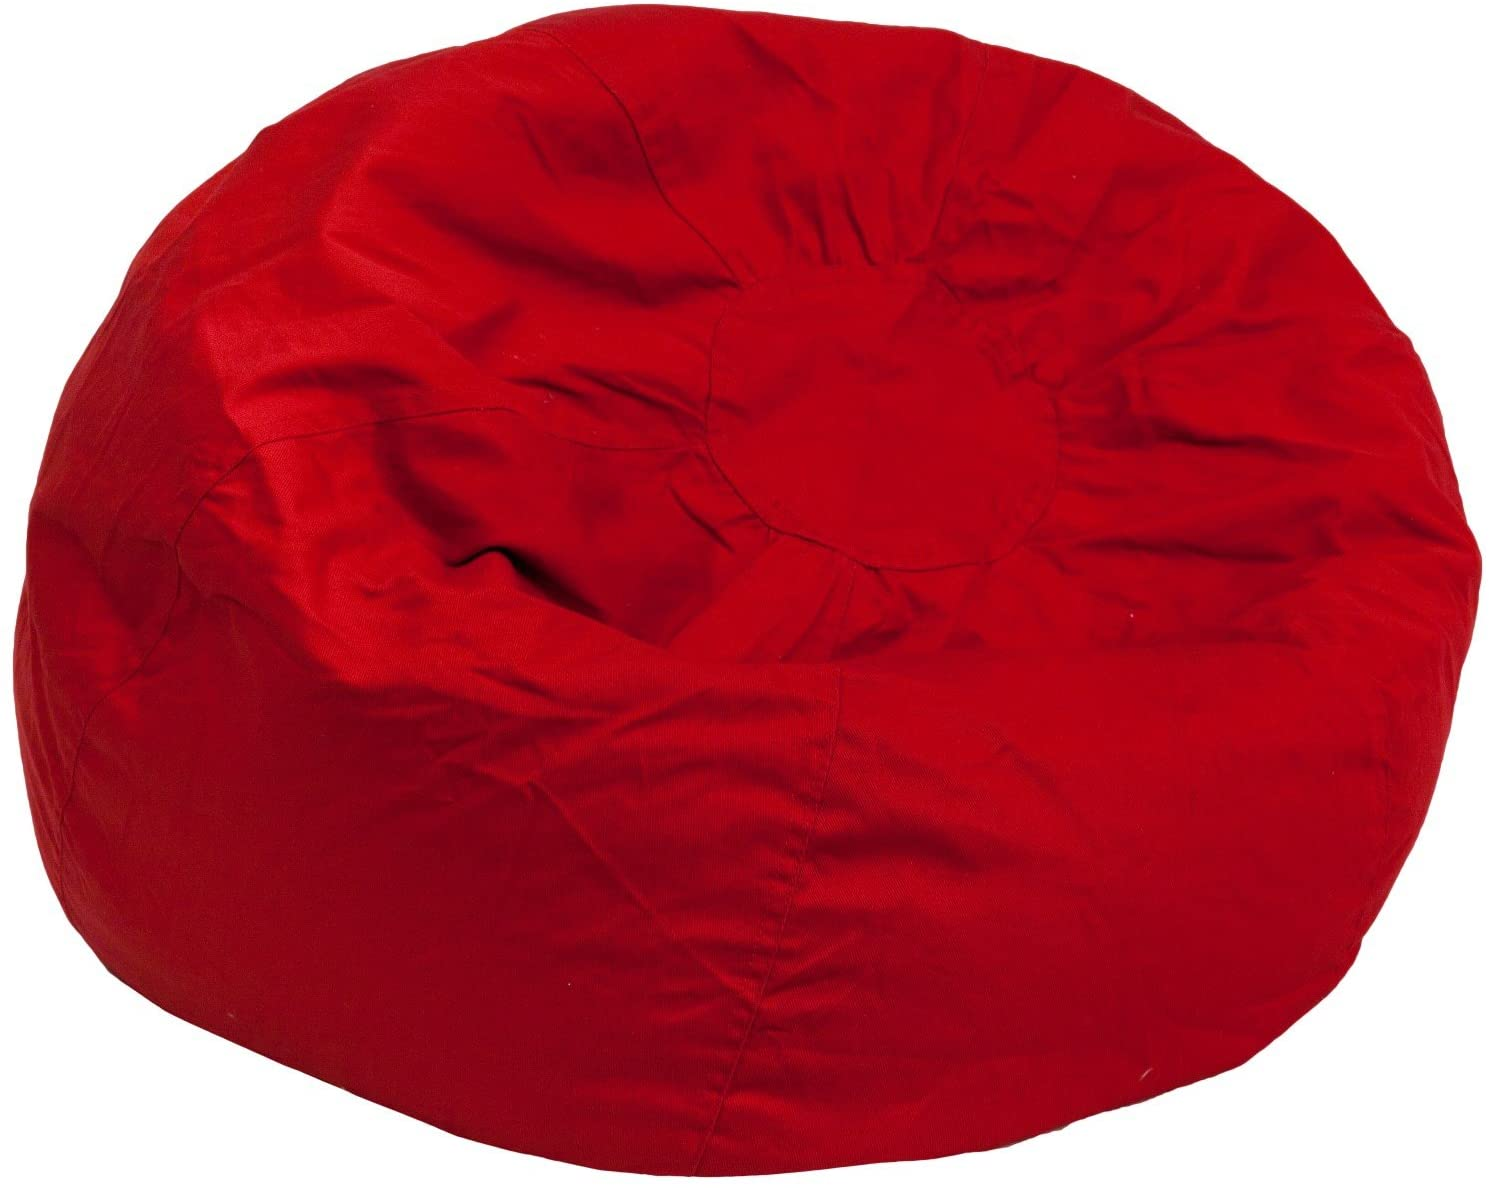 BBD Oversized Solid Red Bean Bag Chair